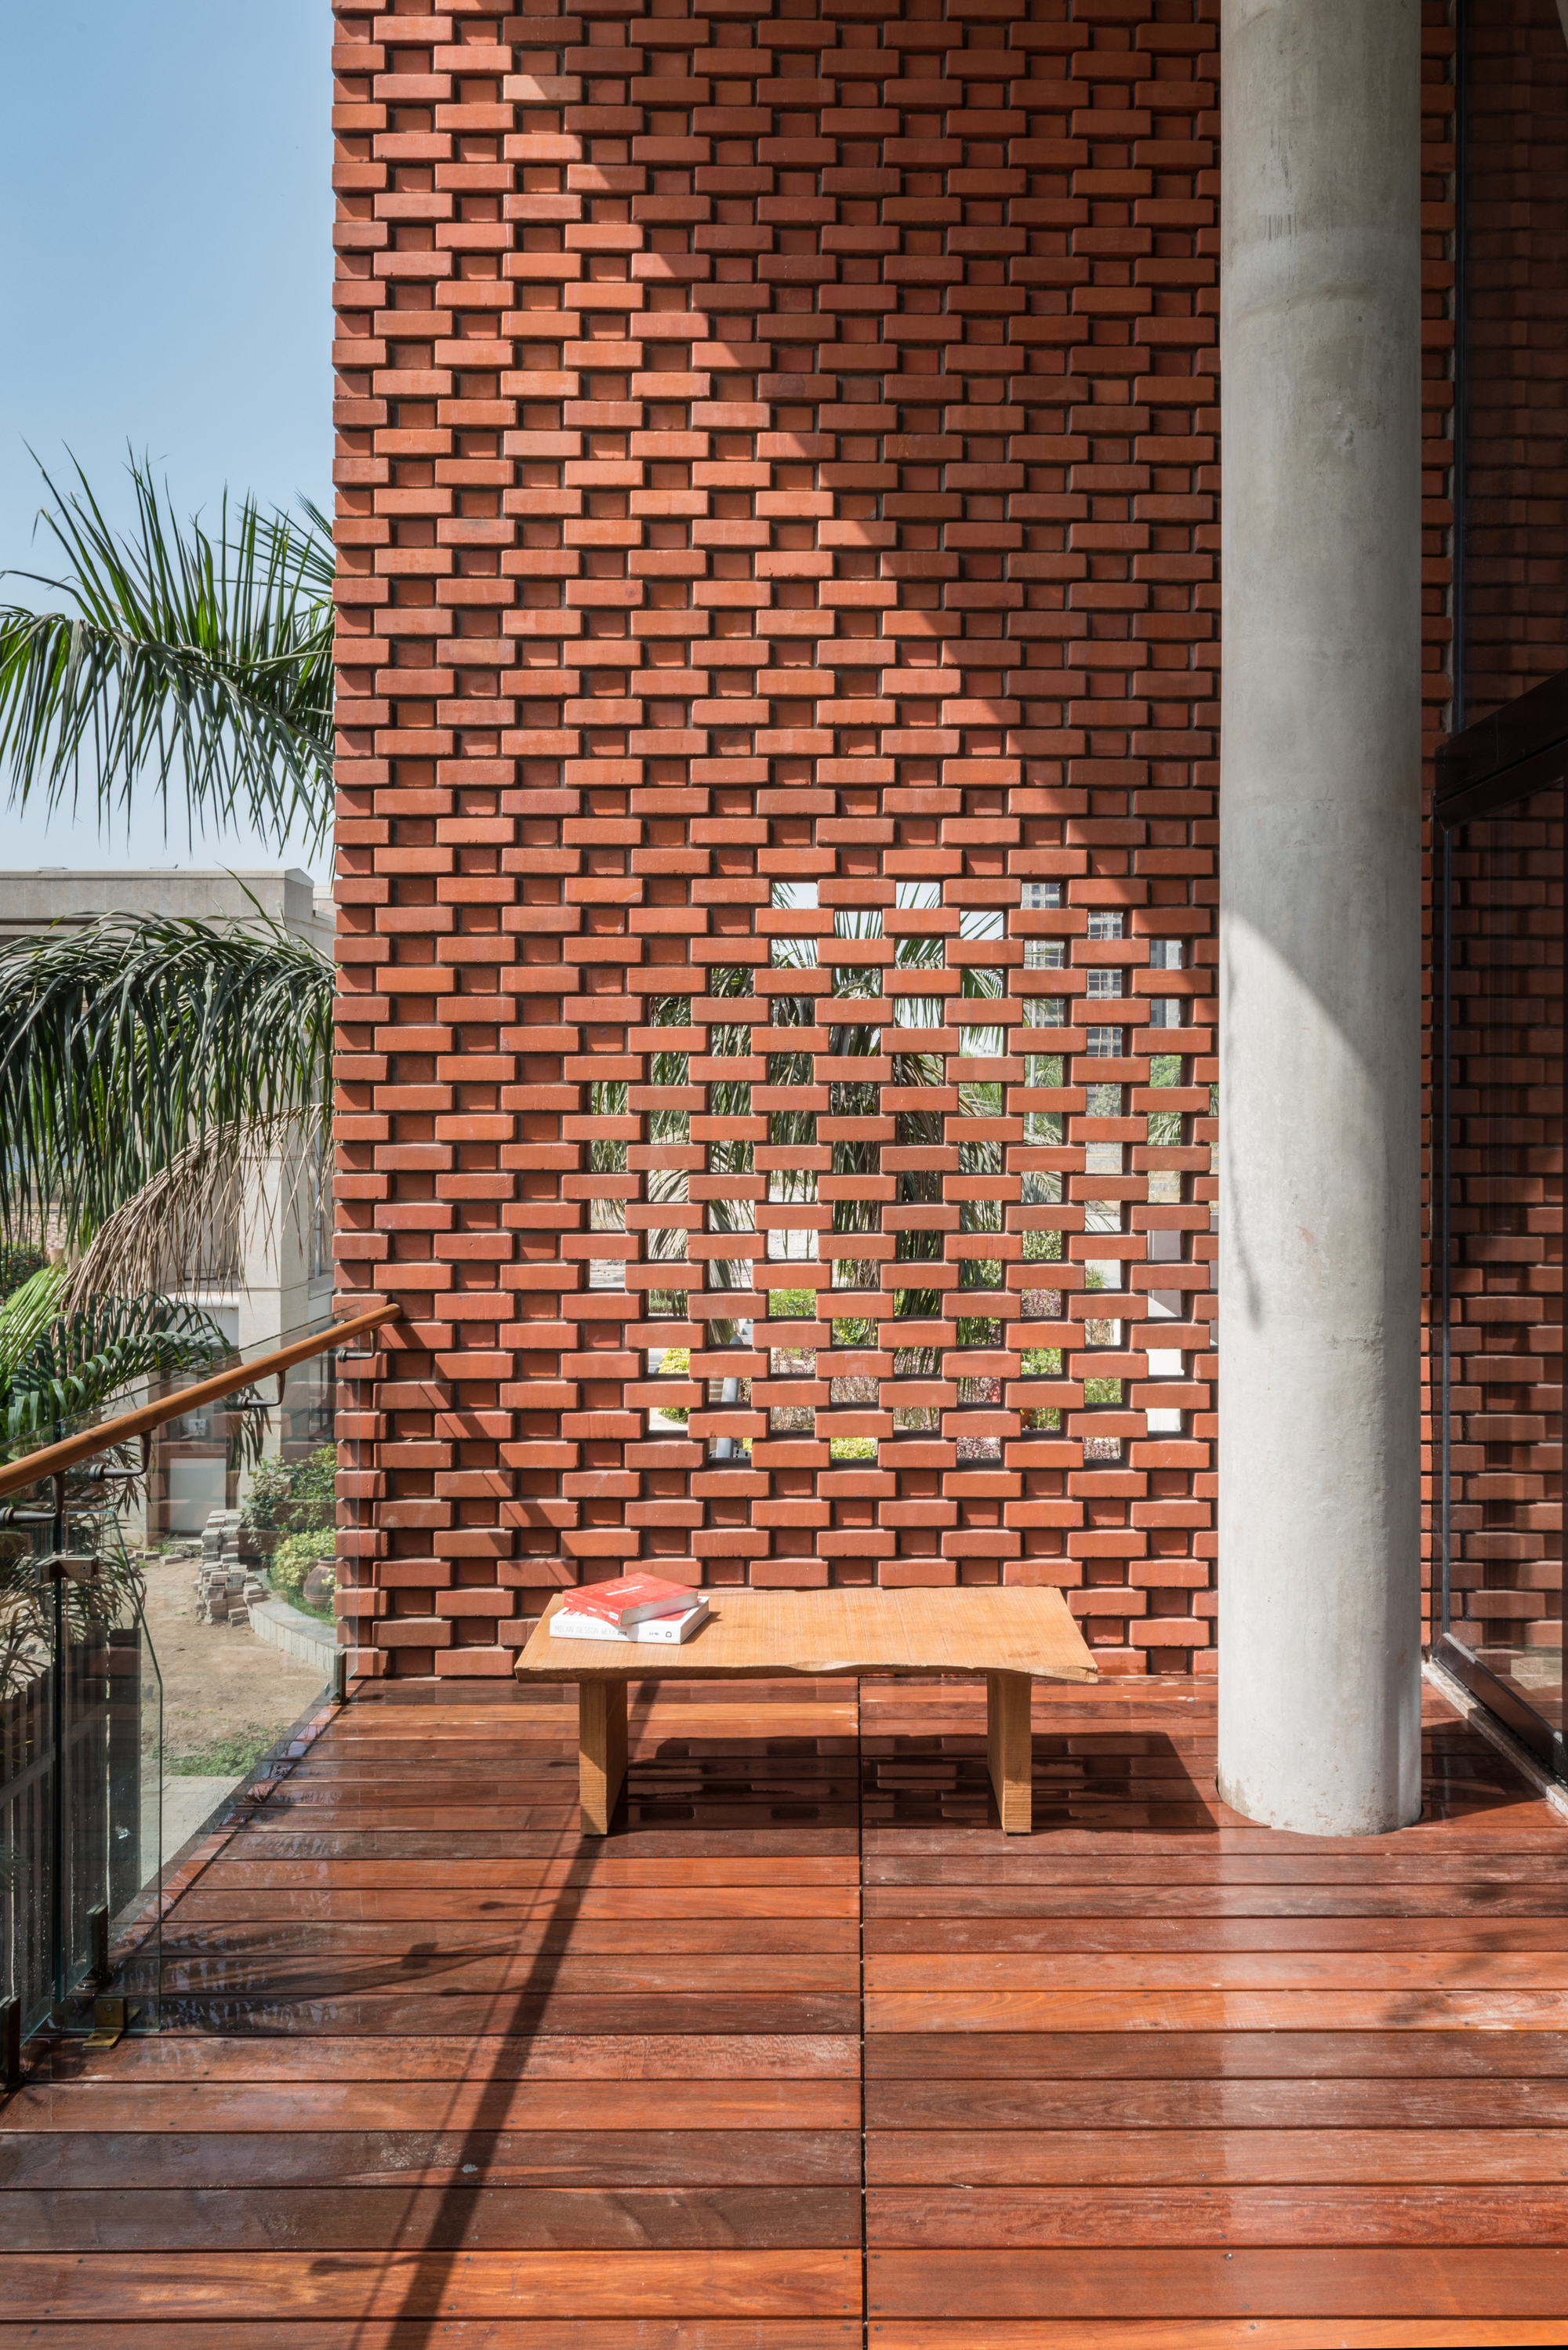 Gallery of brick curtain house design work group 2 - Exterior brick wall design ideas ...